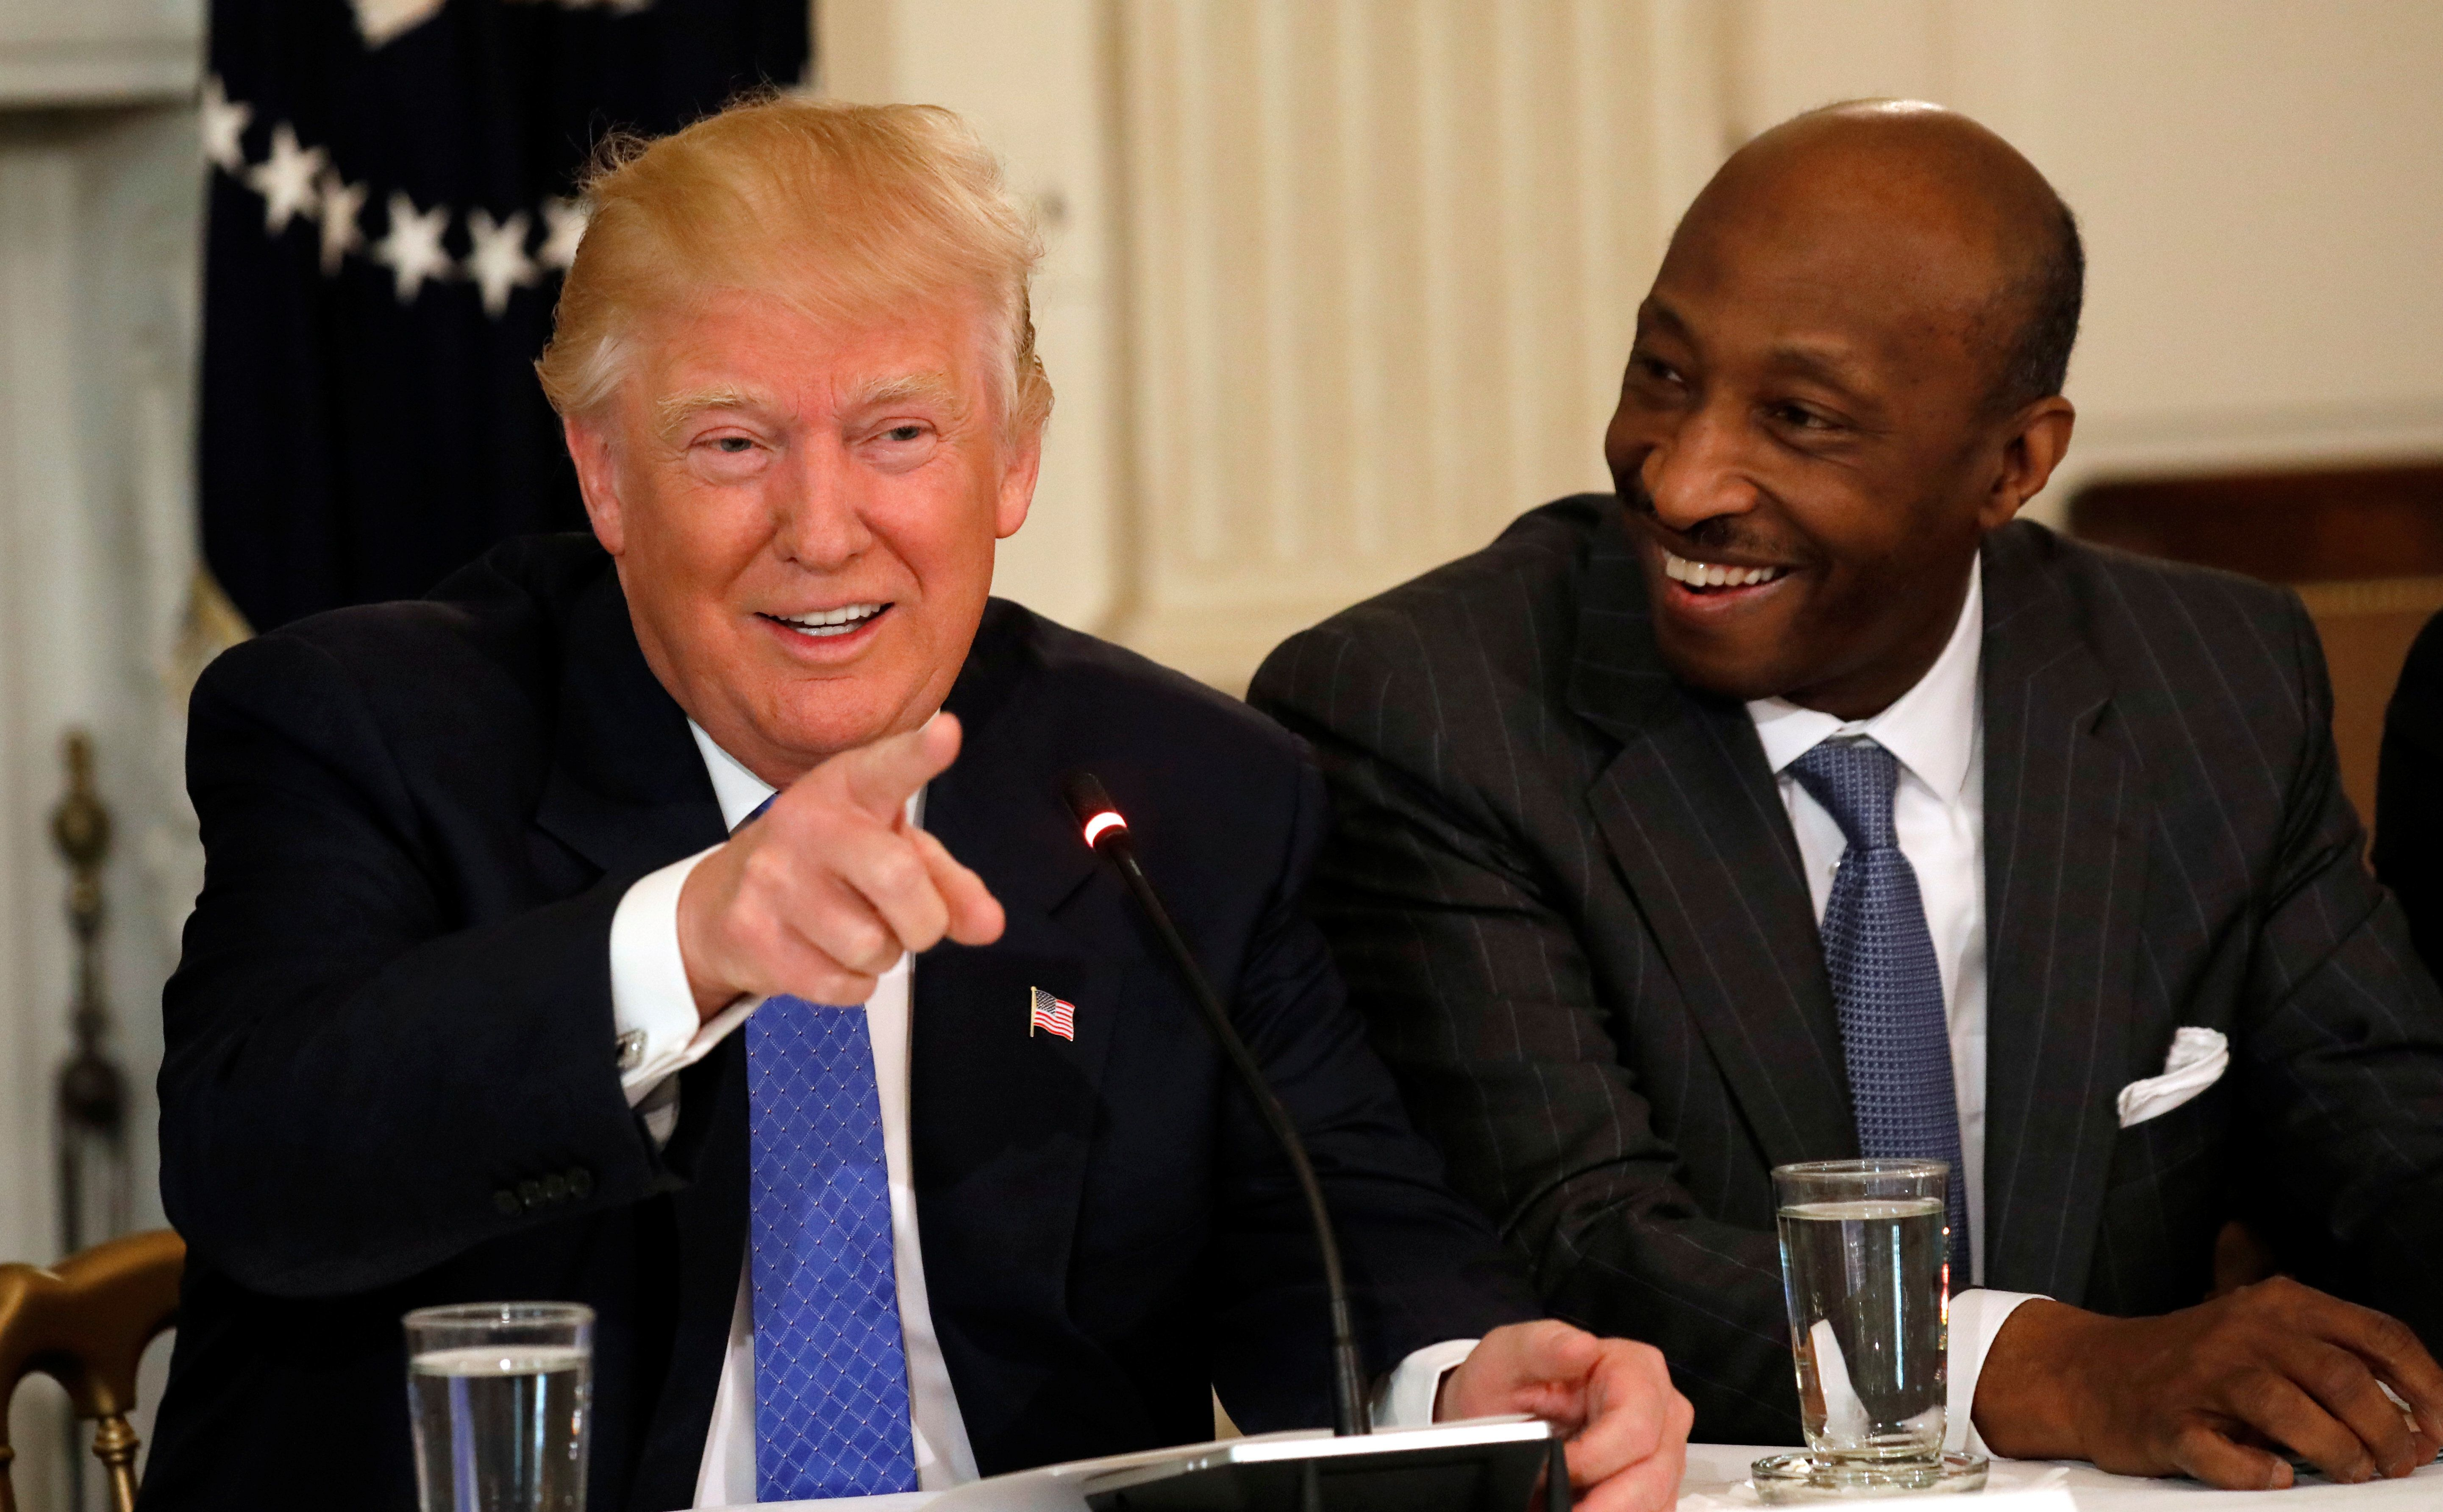 President Donald and Merck & Co. CEO Ken Frazier at a White House meeting in